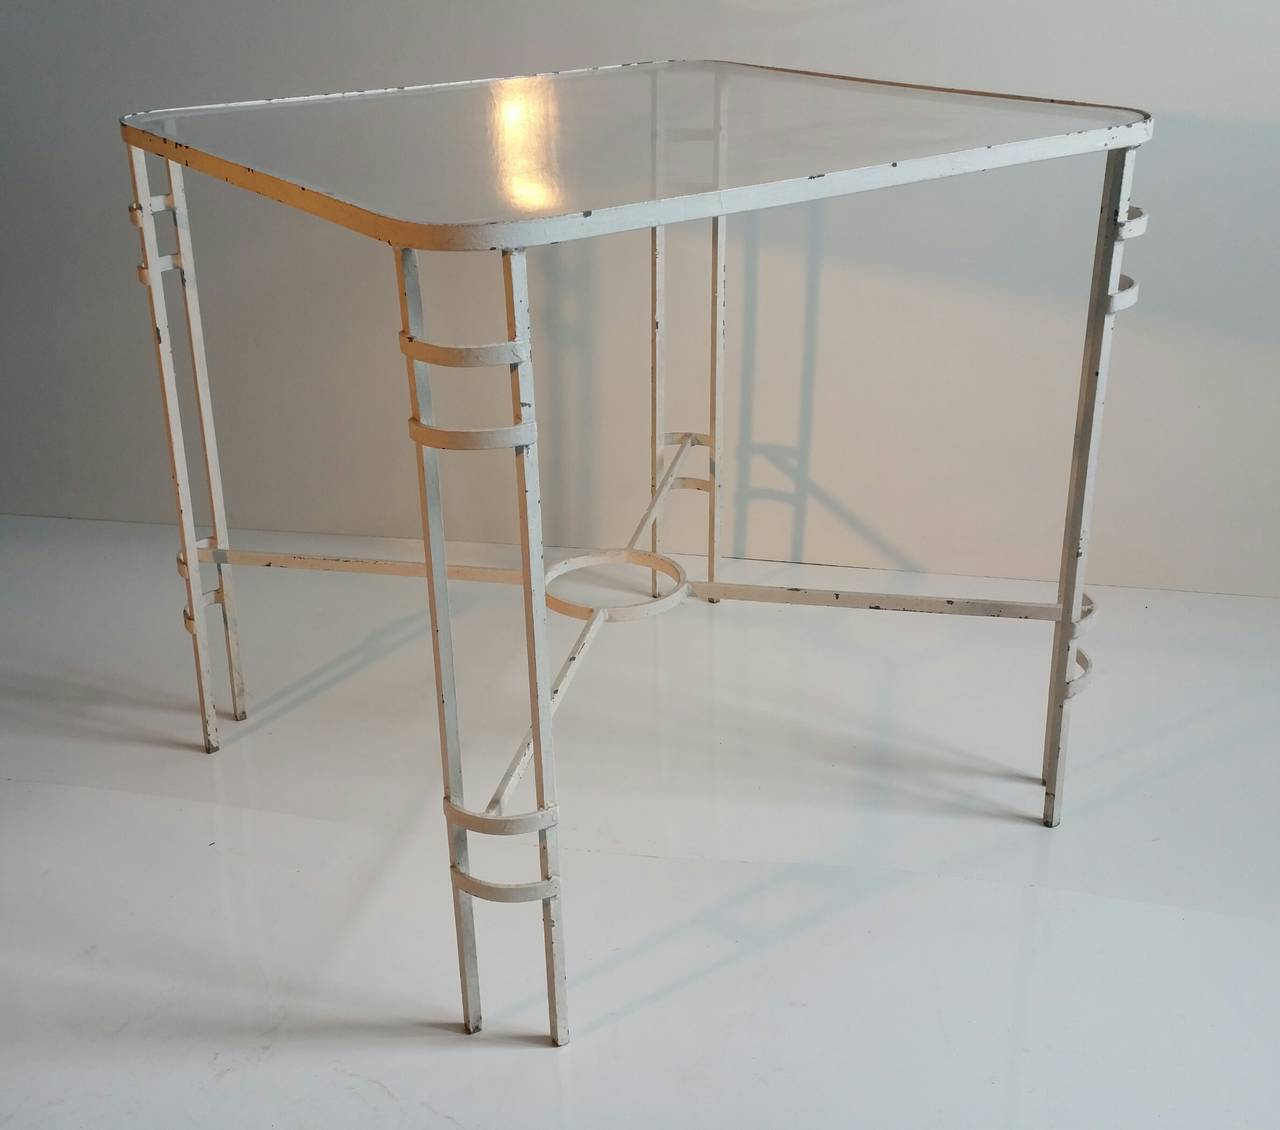 Modernist French Or German Wrought Iron Table For Sale At